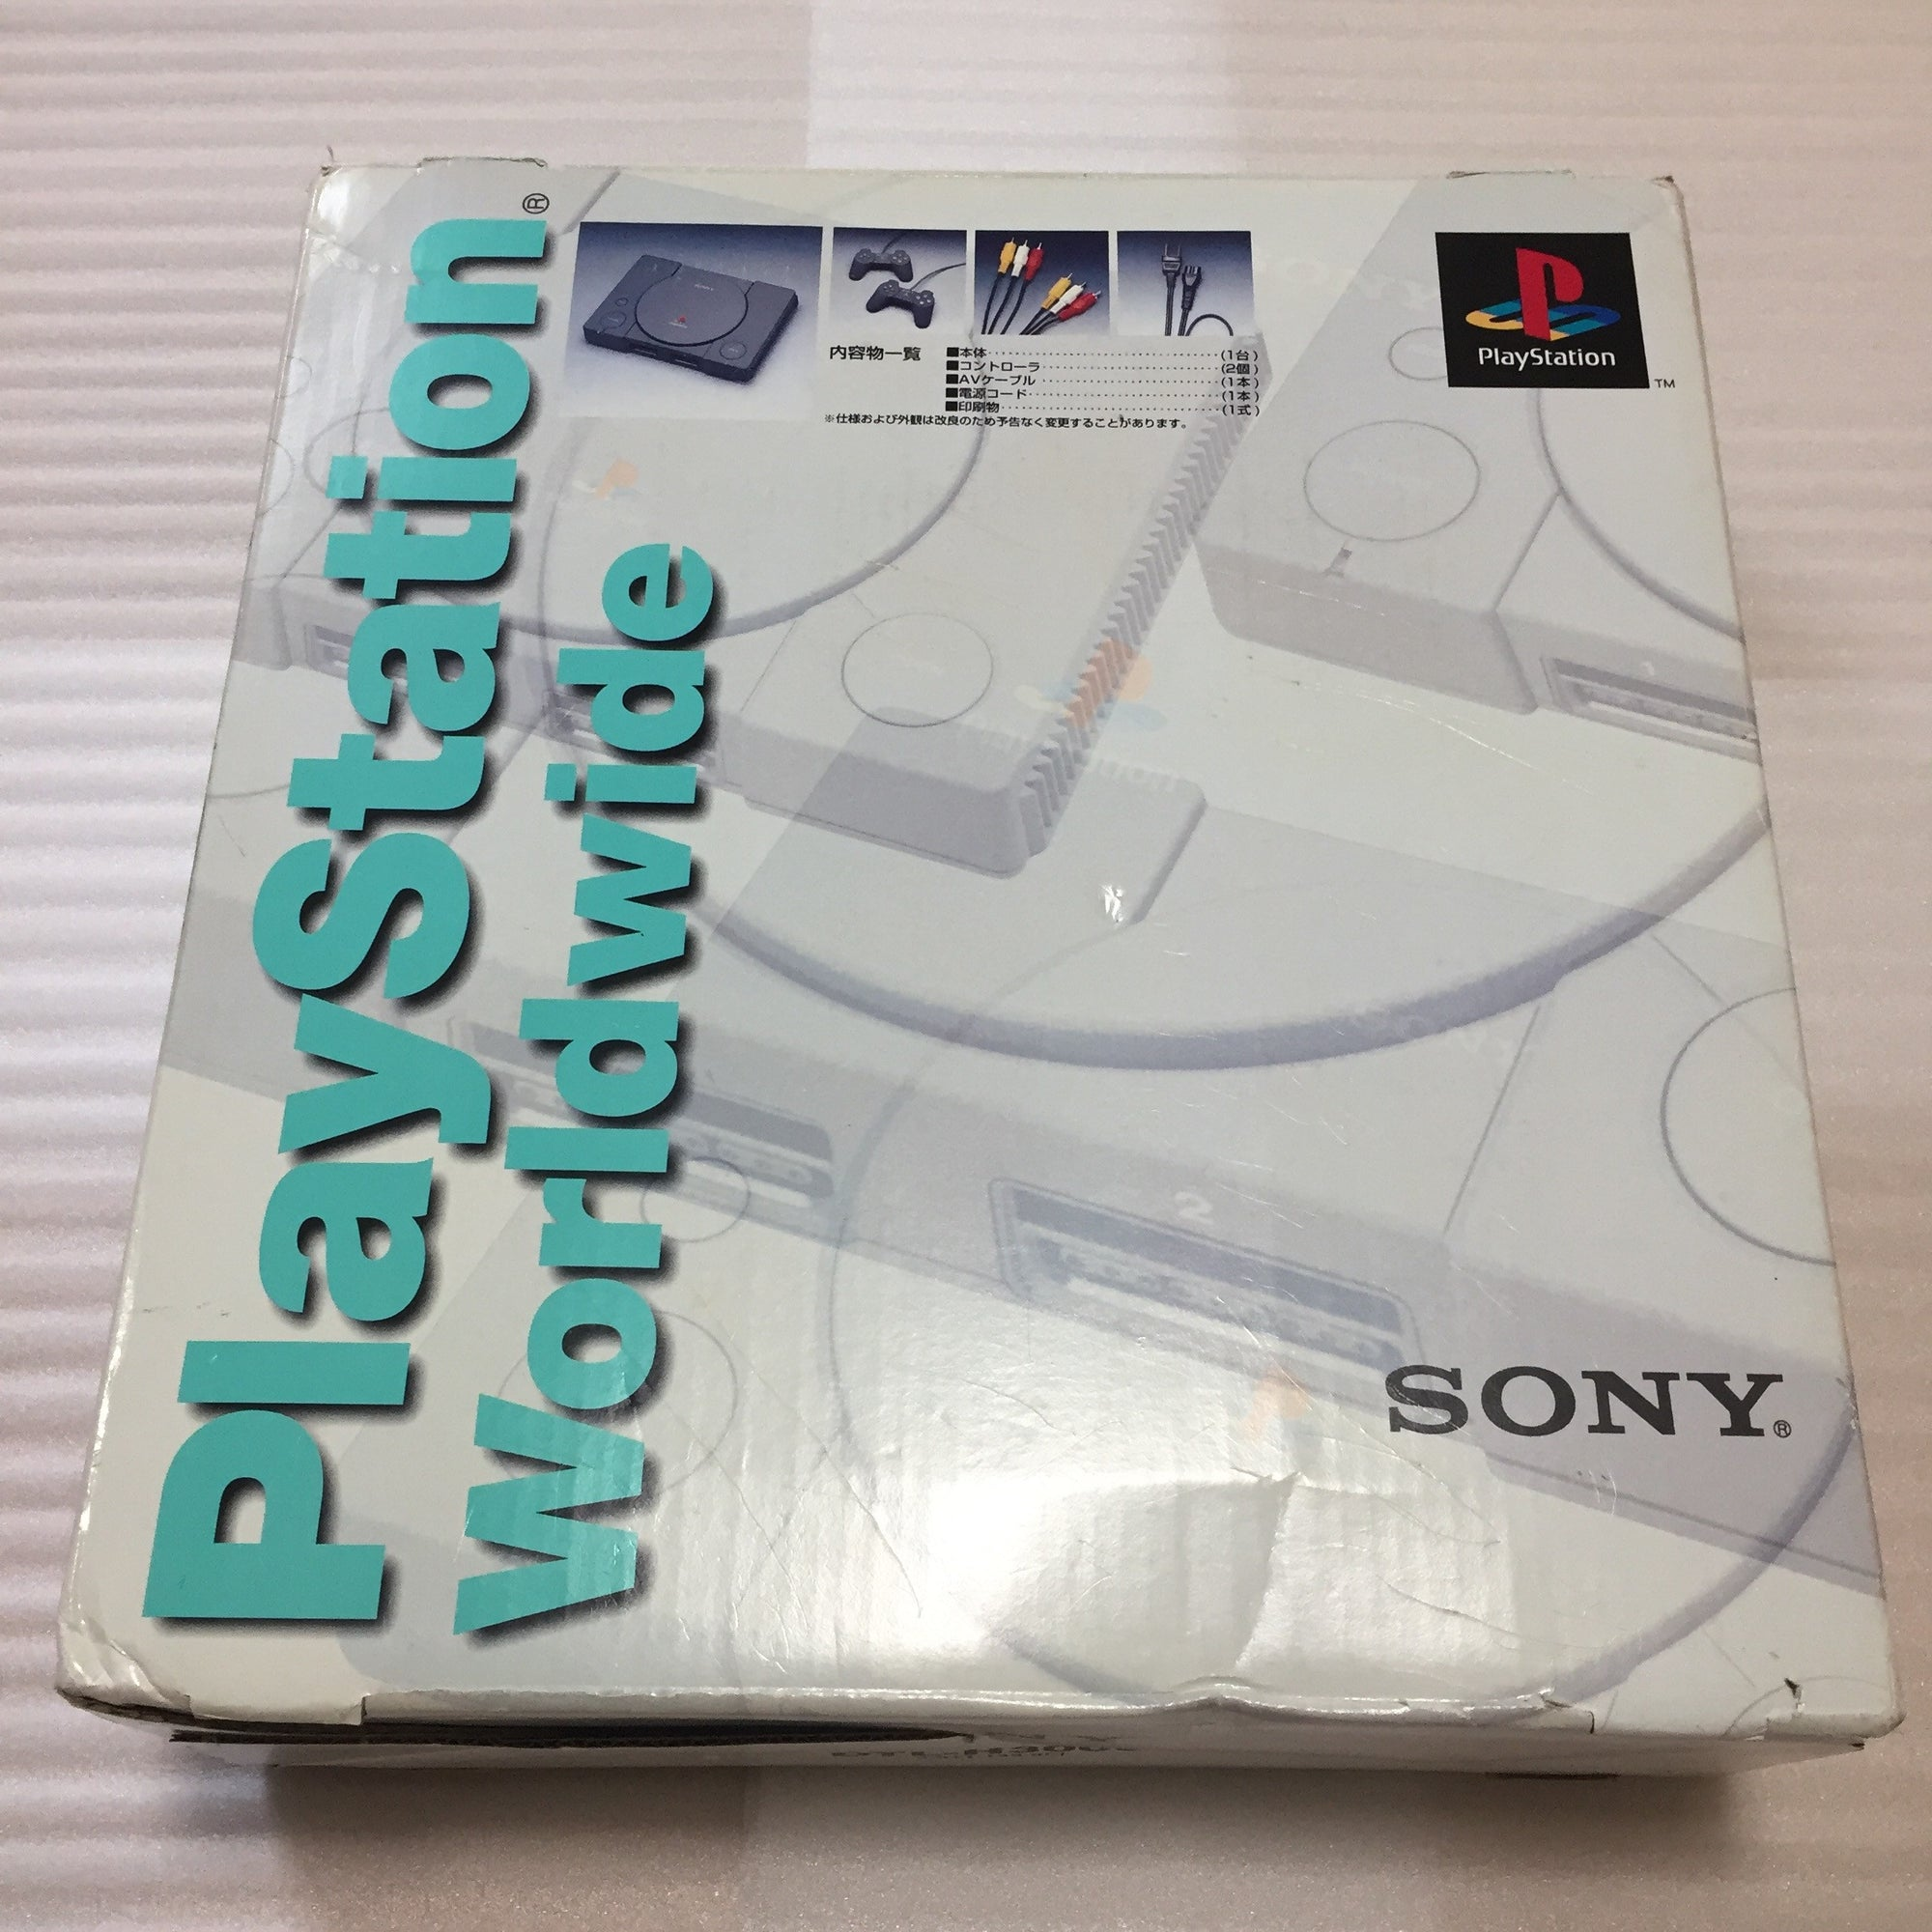 Boxed PS1 DTL-H3000 with RGB cable